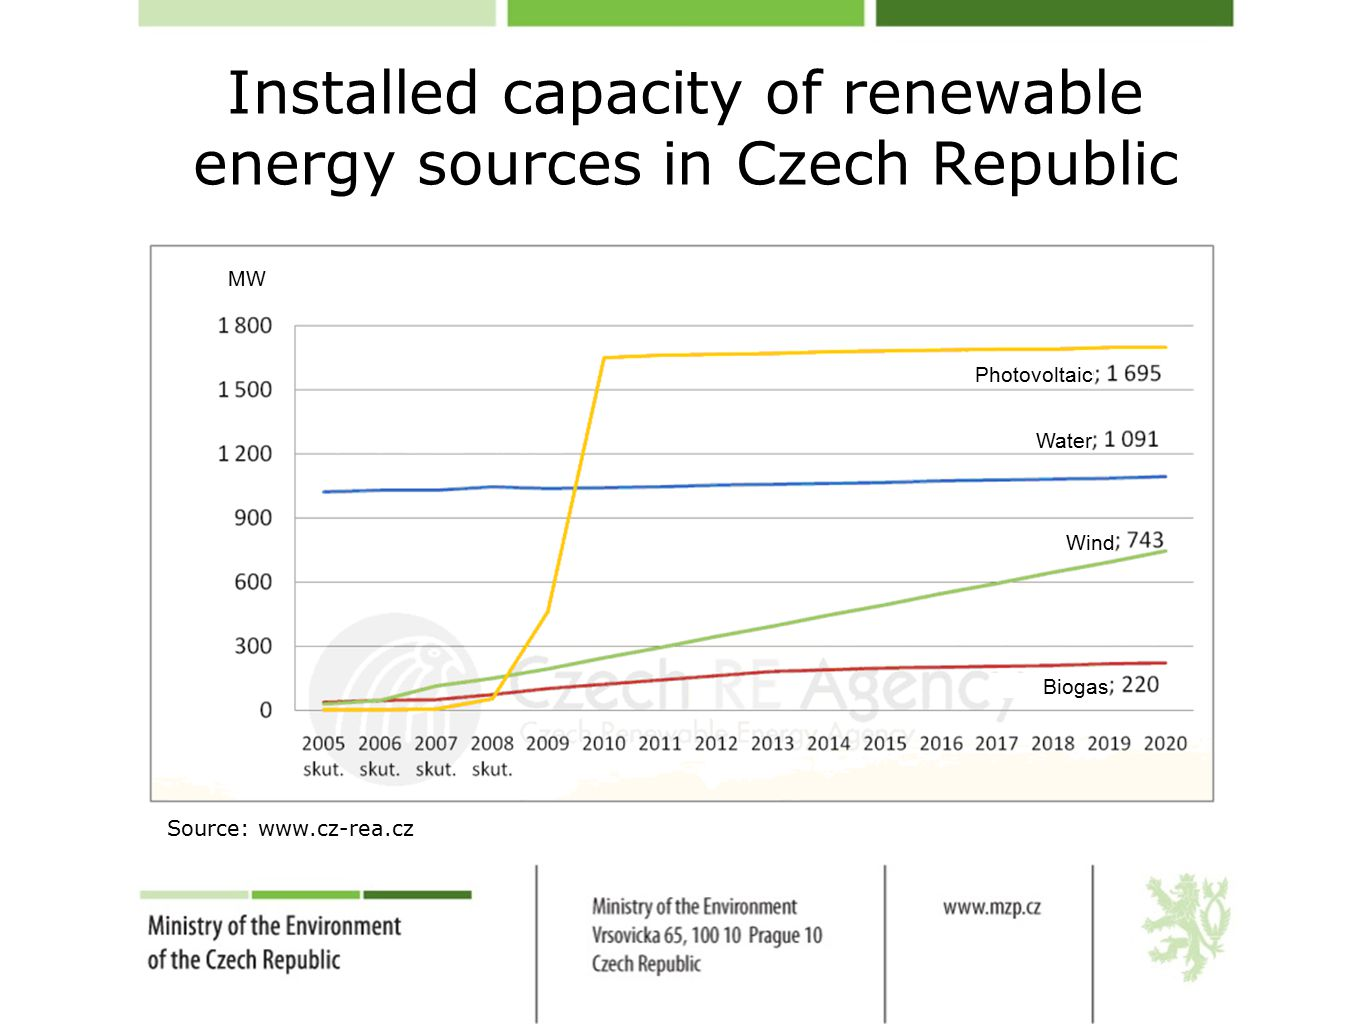 Installed capacity of renewable energy sources in Czech Republic Source: www.cz-rea.cz Biogas Photovoltaic Wind Water MW